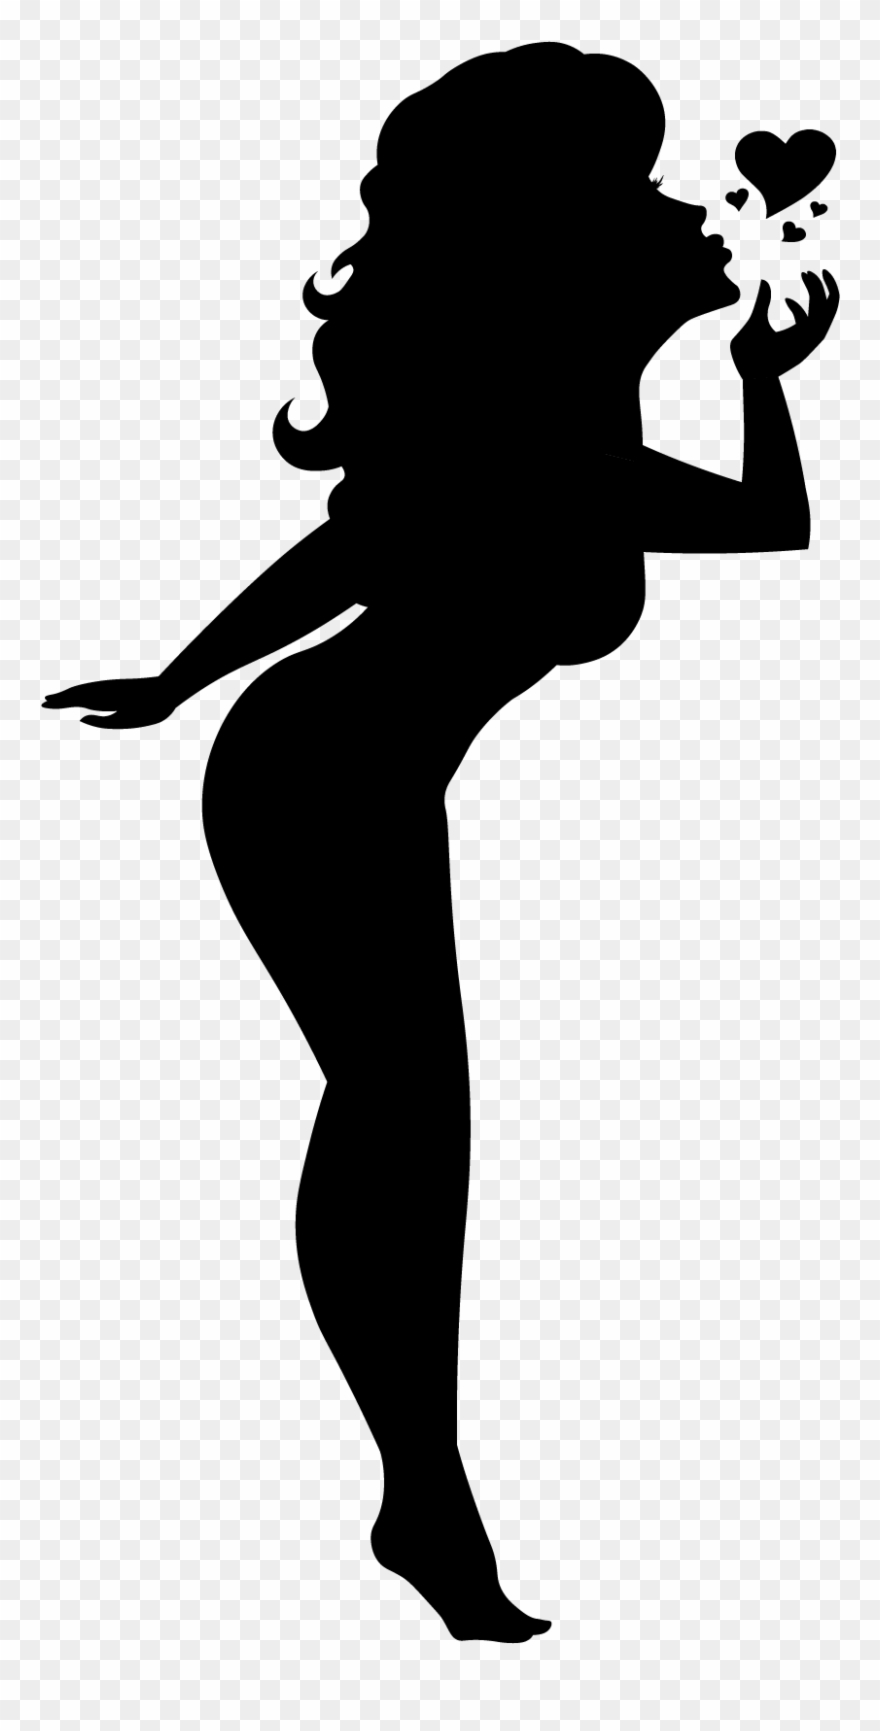 Pin up silhouette clipart graphic freeuse Blowing A Kiss Silhouette Pinup Girl Black Cutout Pin - Pin ... graphic freeuse